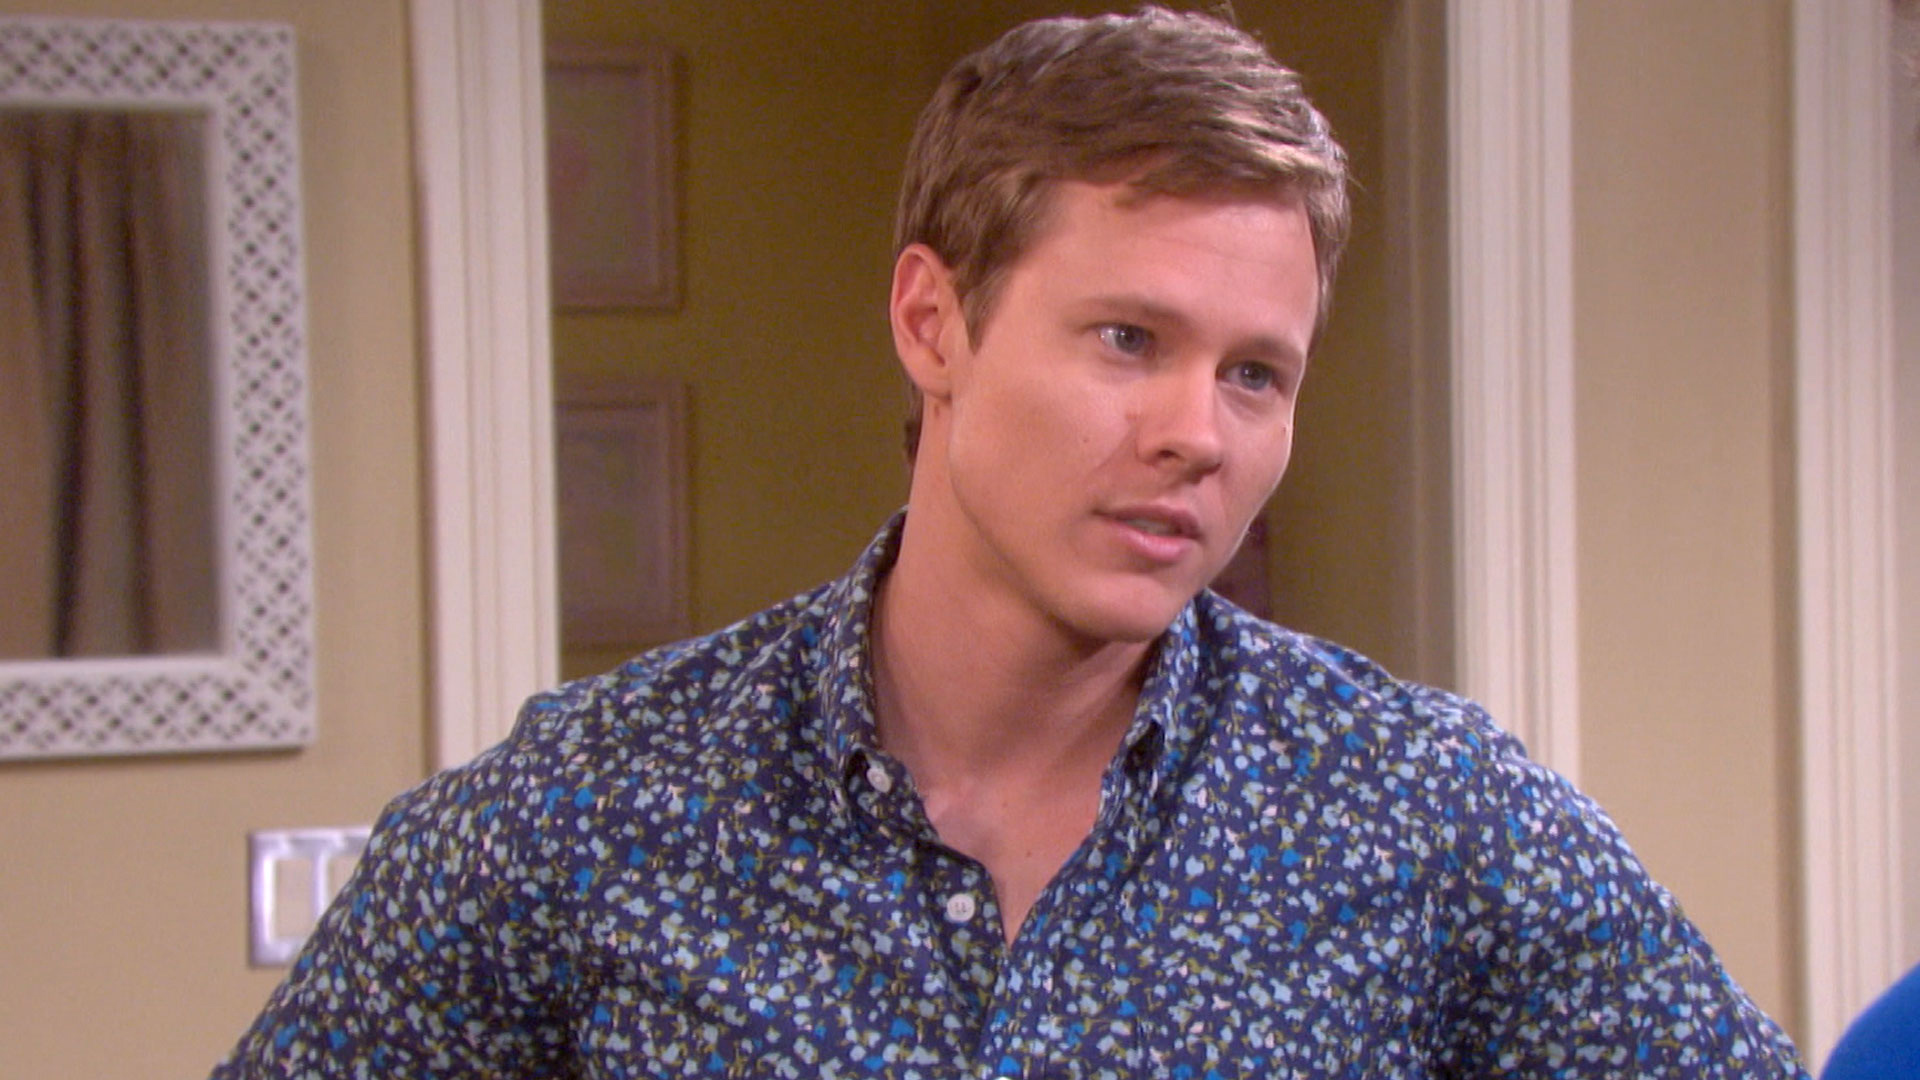 Sonny feels guilty about the secret he's keeping from Will.